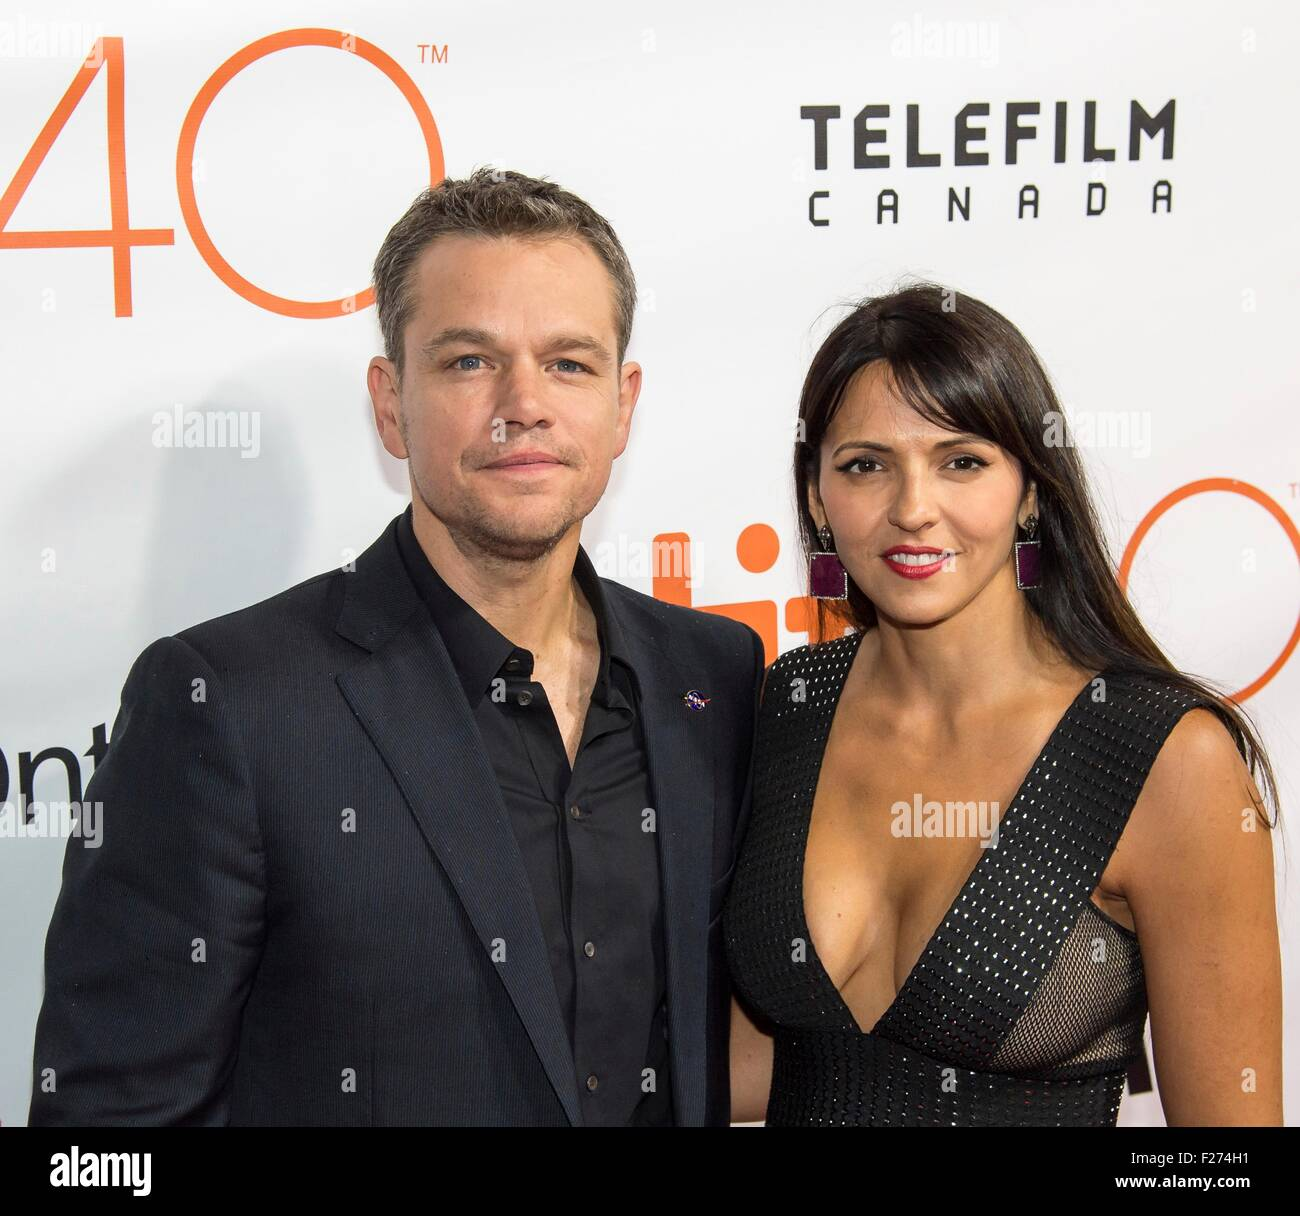 Actor Matt Damon and his wife Luciana Bozan Barroso attend the world premiere for The Martian at the Toronto International - Stock Image